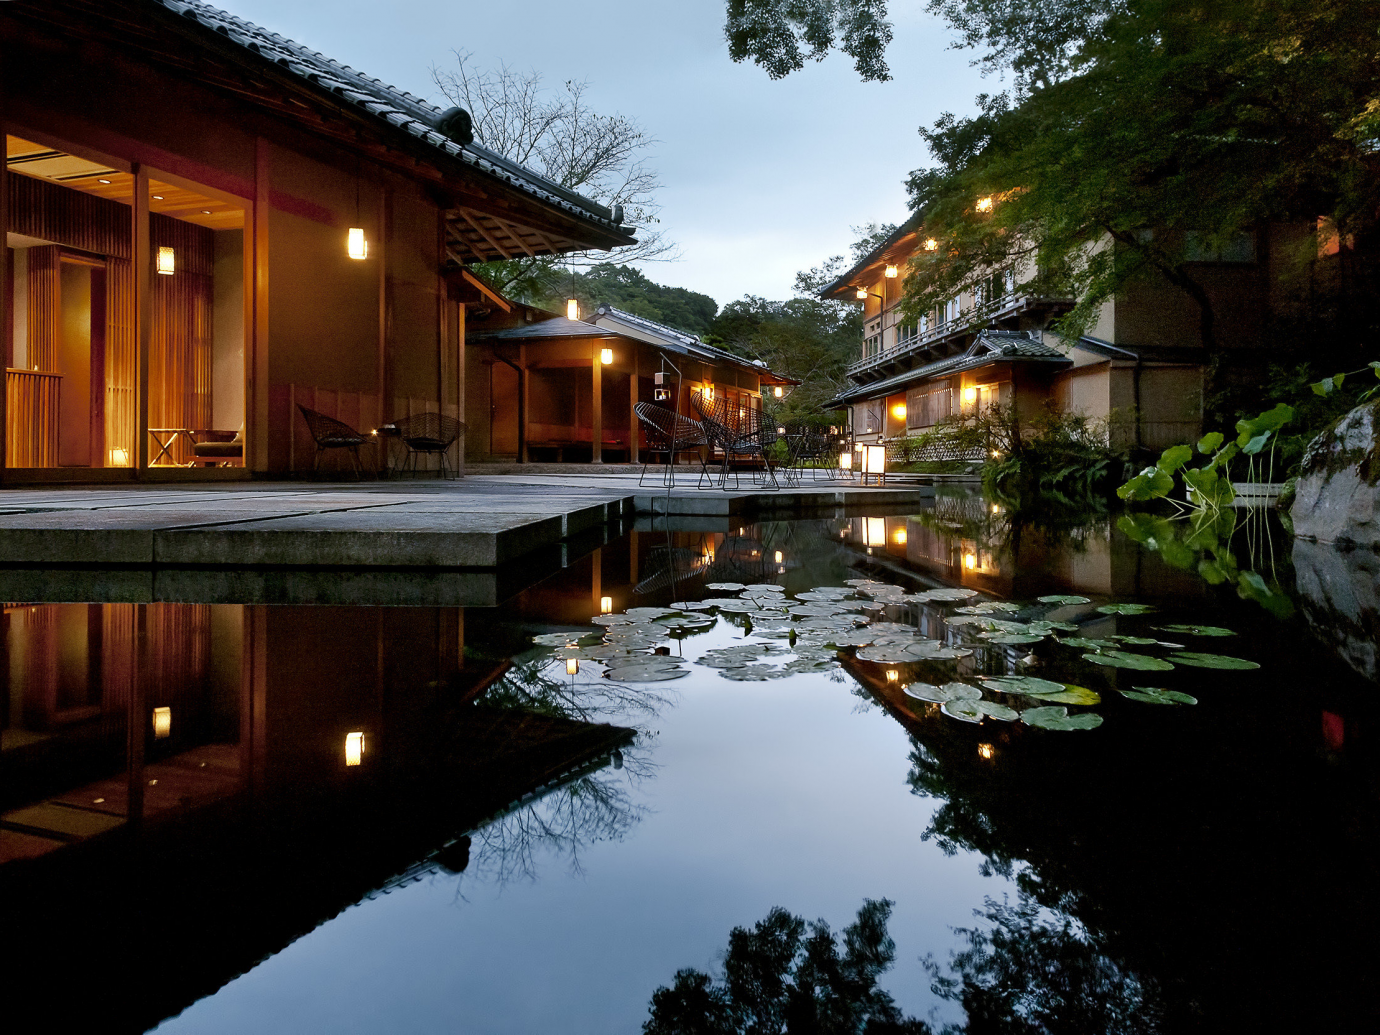 Outdoor pits with still water pond and lily pads at night